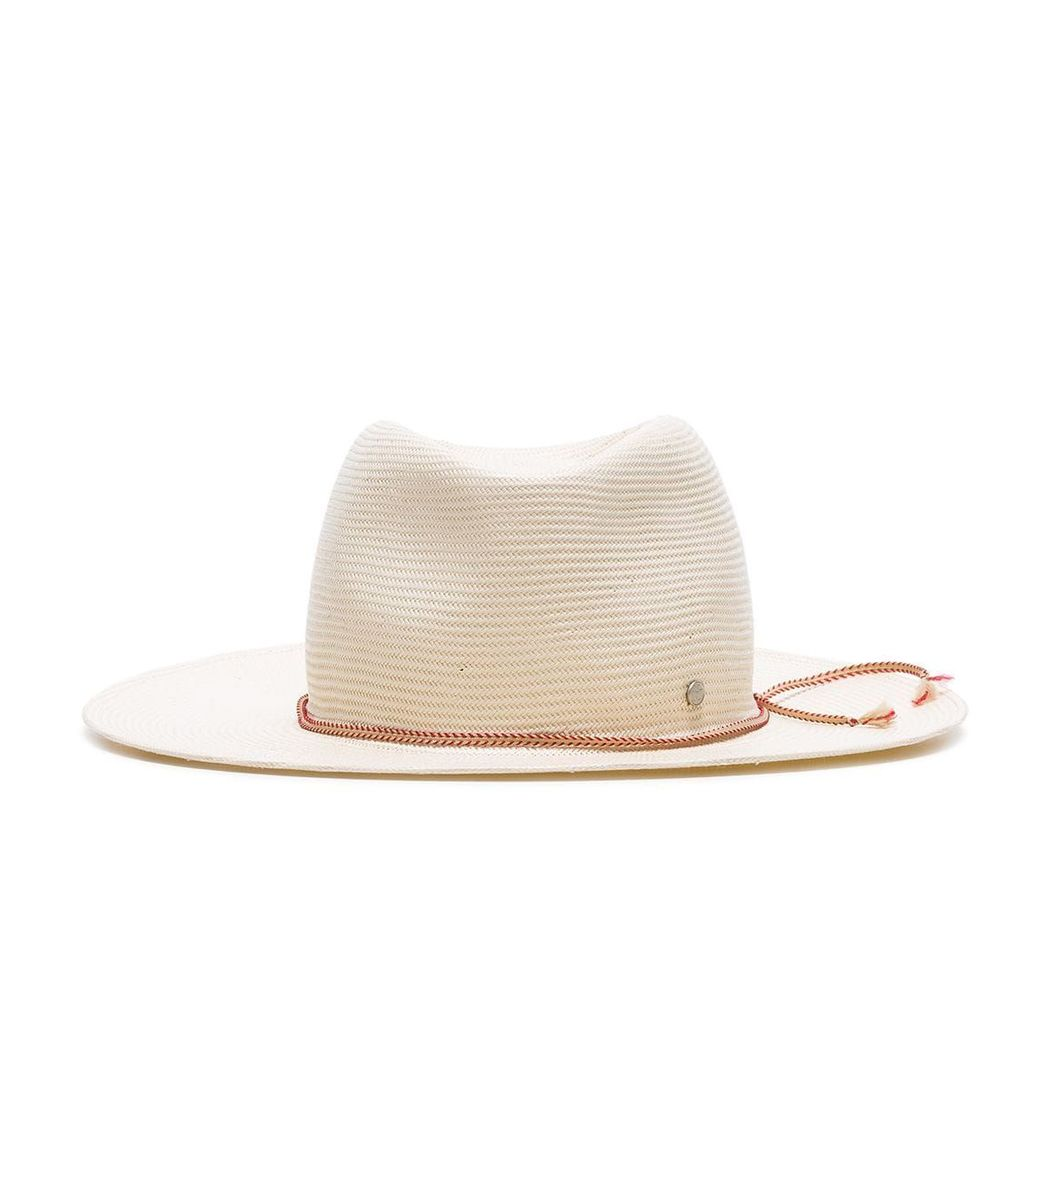 8033e19ba1f39 Maison Michel Charles Roll-Able Paper Straw Fedora Hat  595